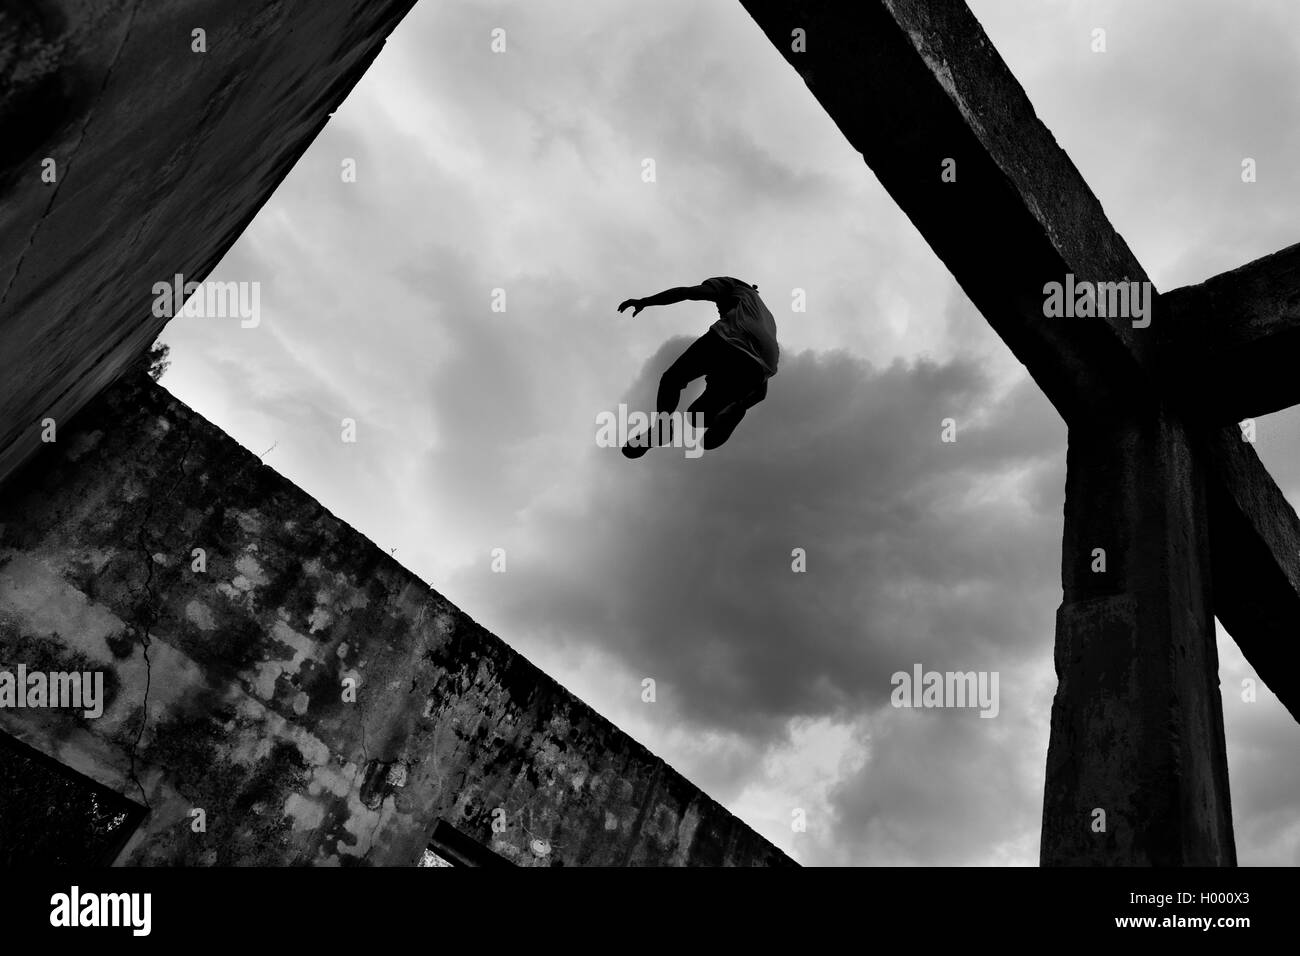 Jose Rodriguez, a freerunner from Plus Parkour team, jumps from the top of the walls during trainings in Bogotá, - Stock Image